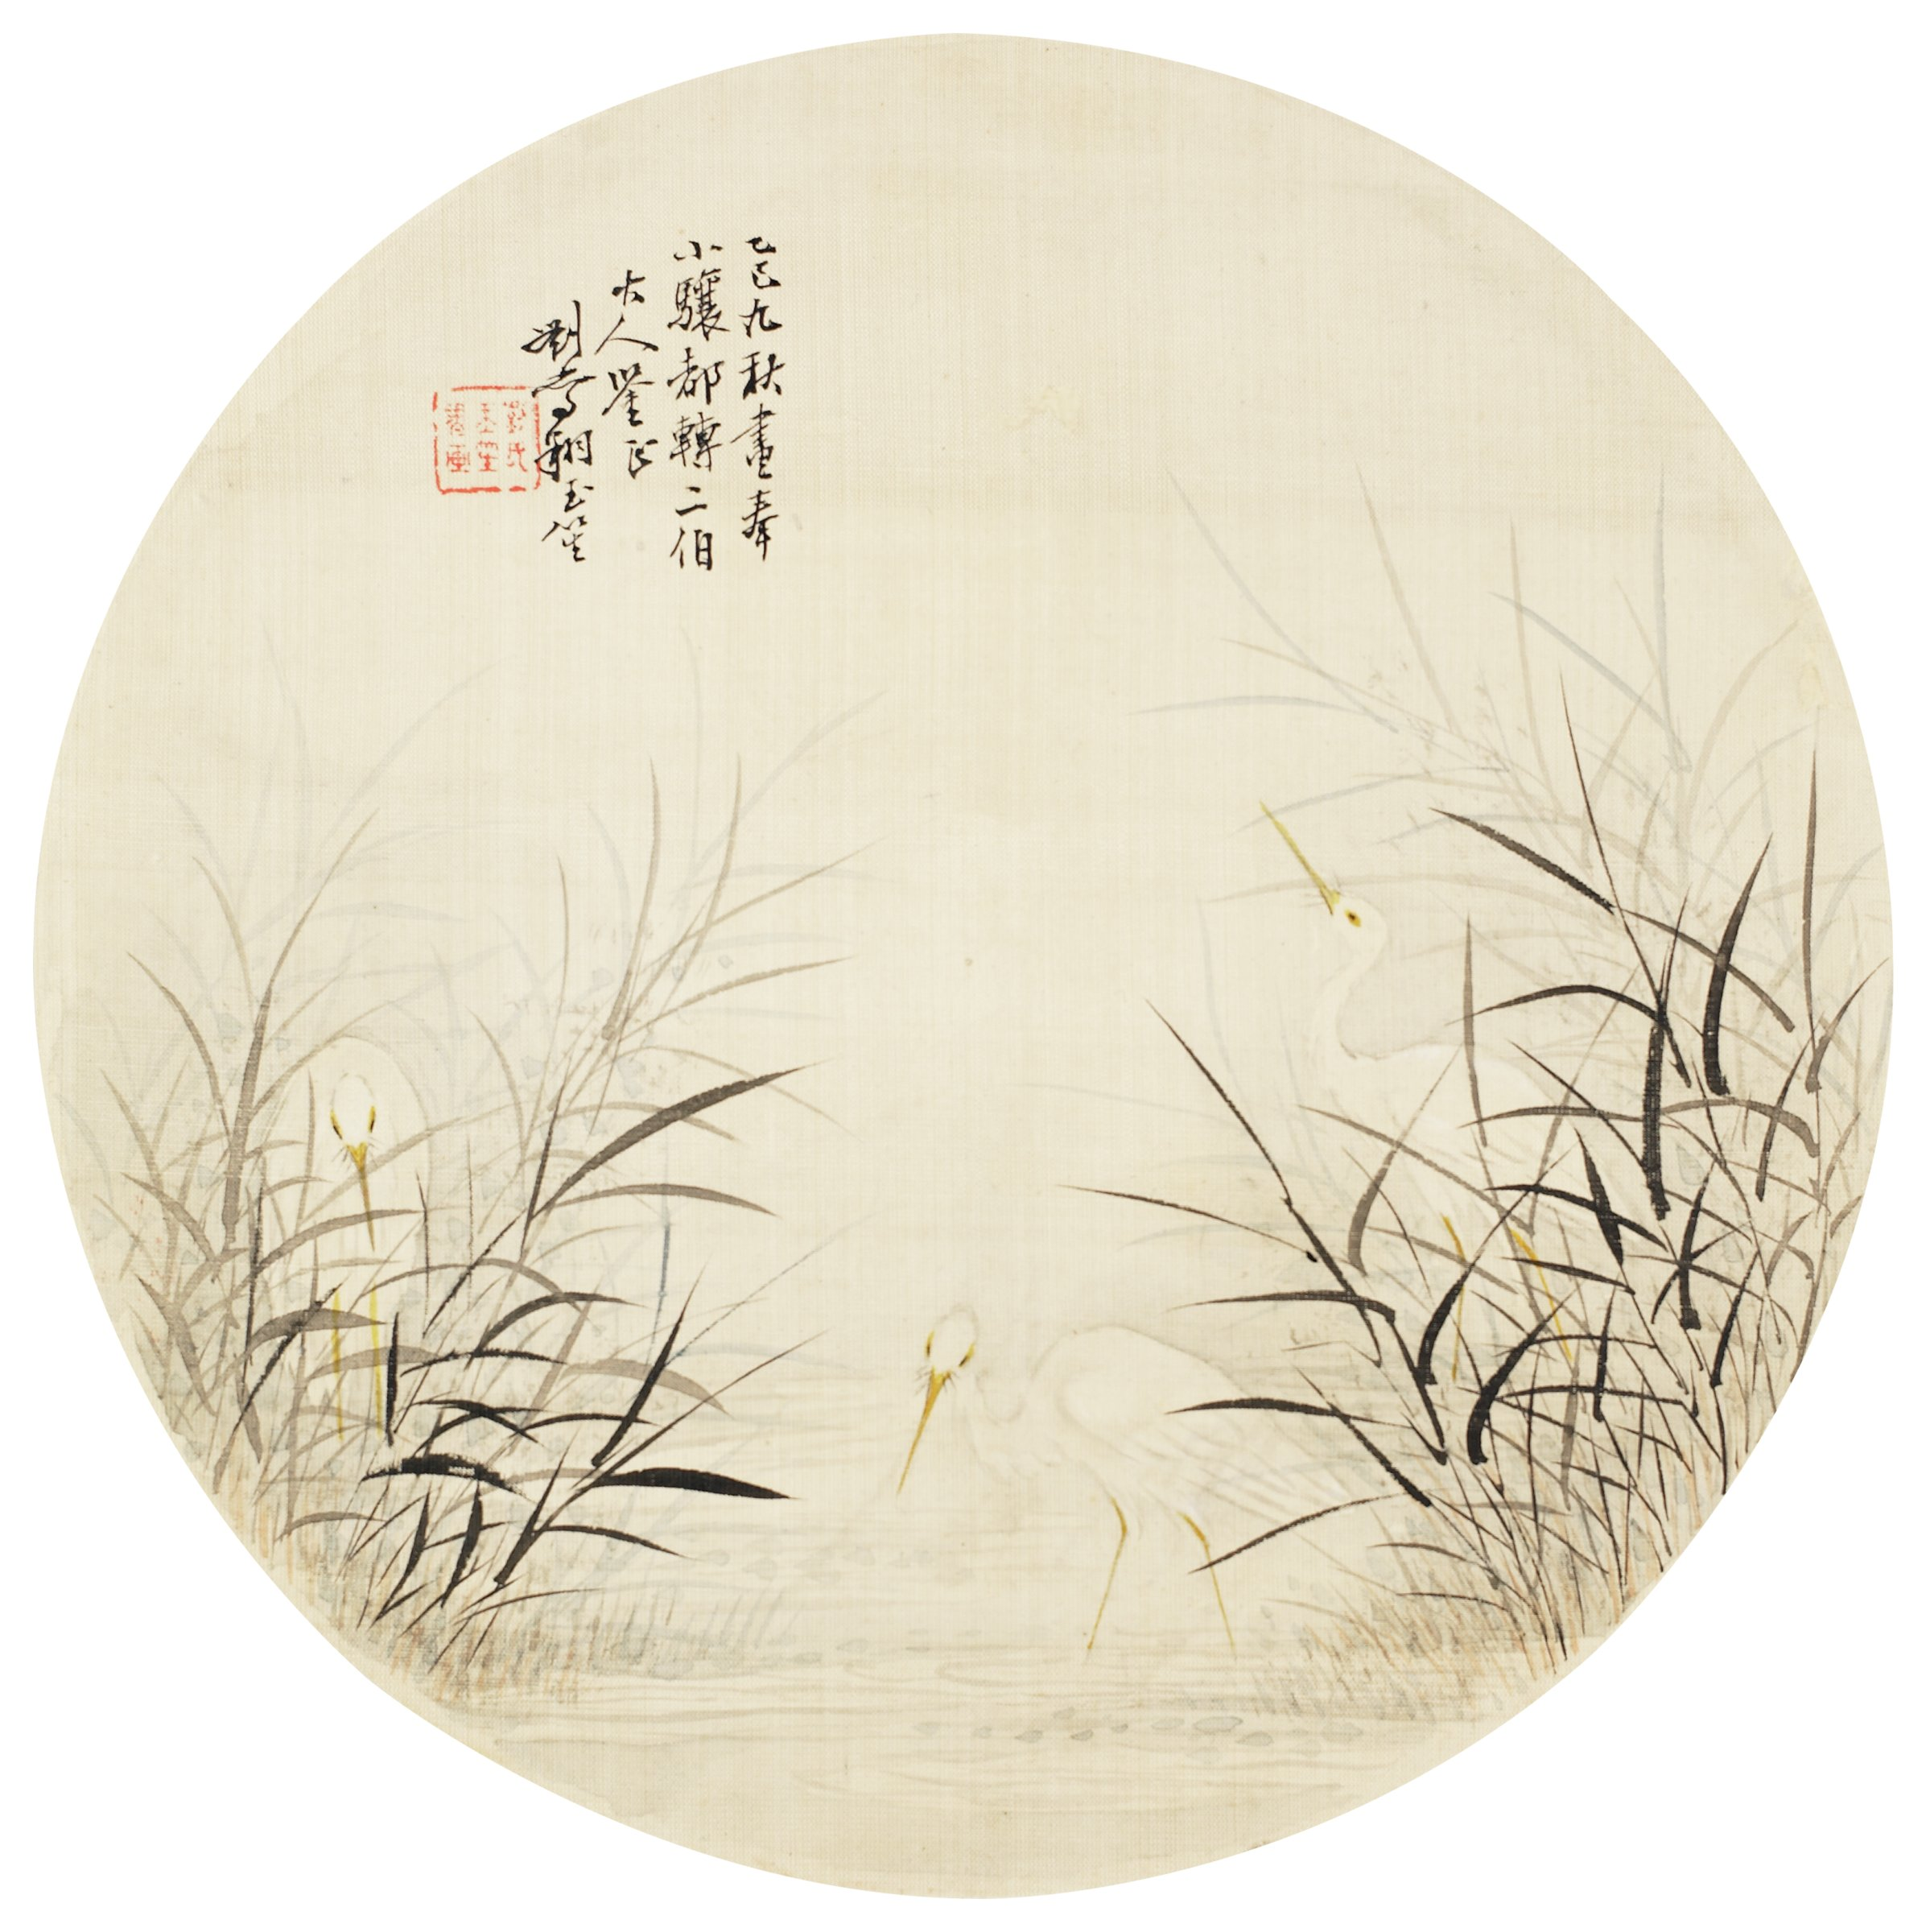 Egrets Wading Among Water Rushes in Autumn in Round Fan Format, Liu Luanxiang, ink and color on silk